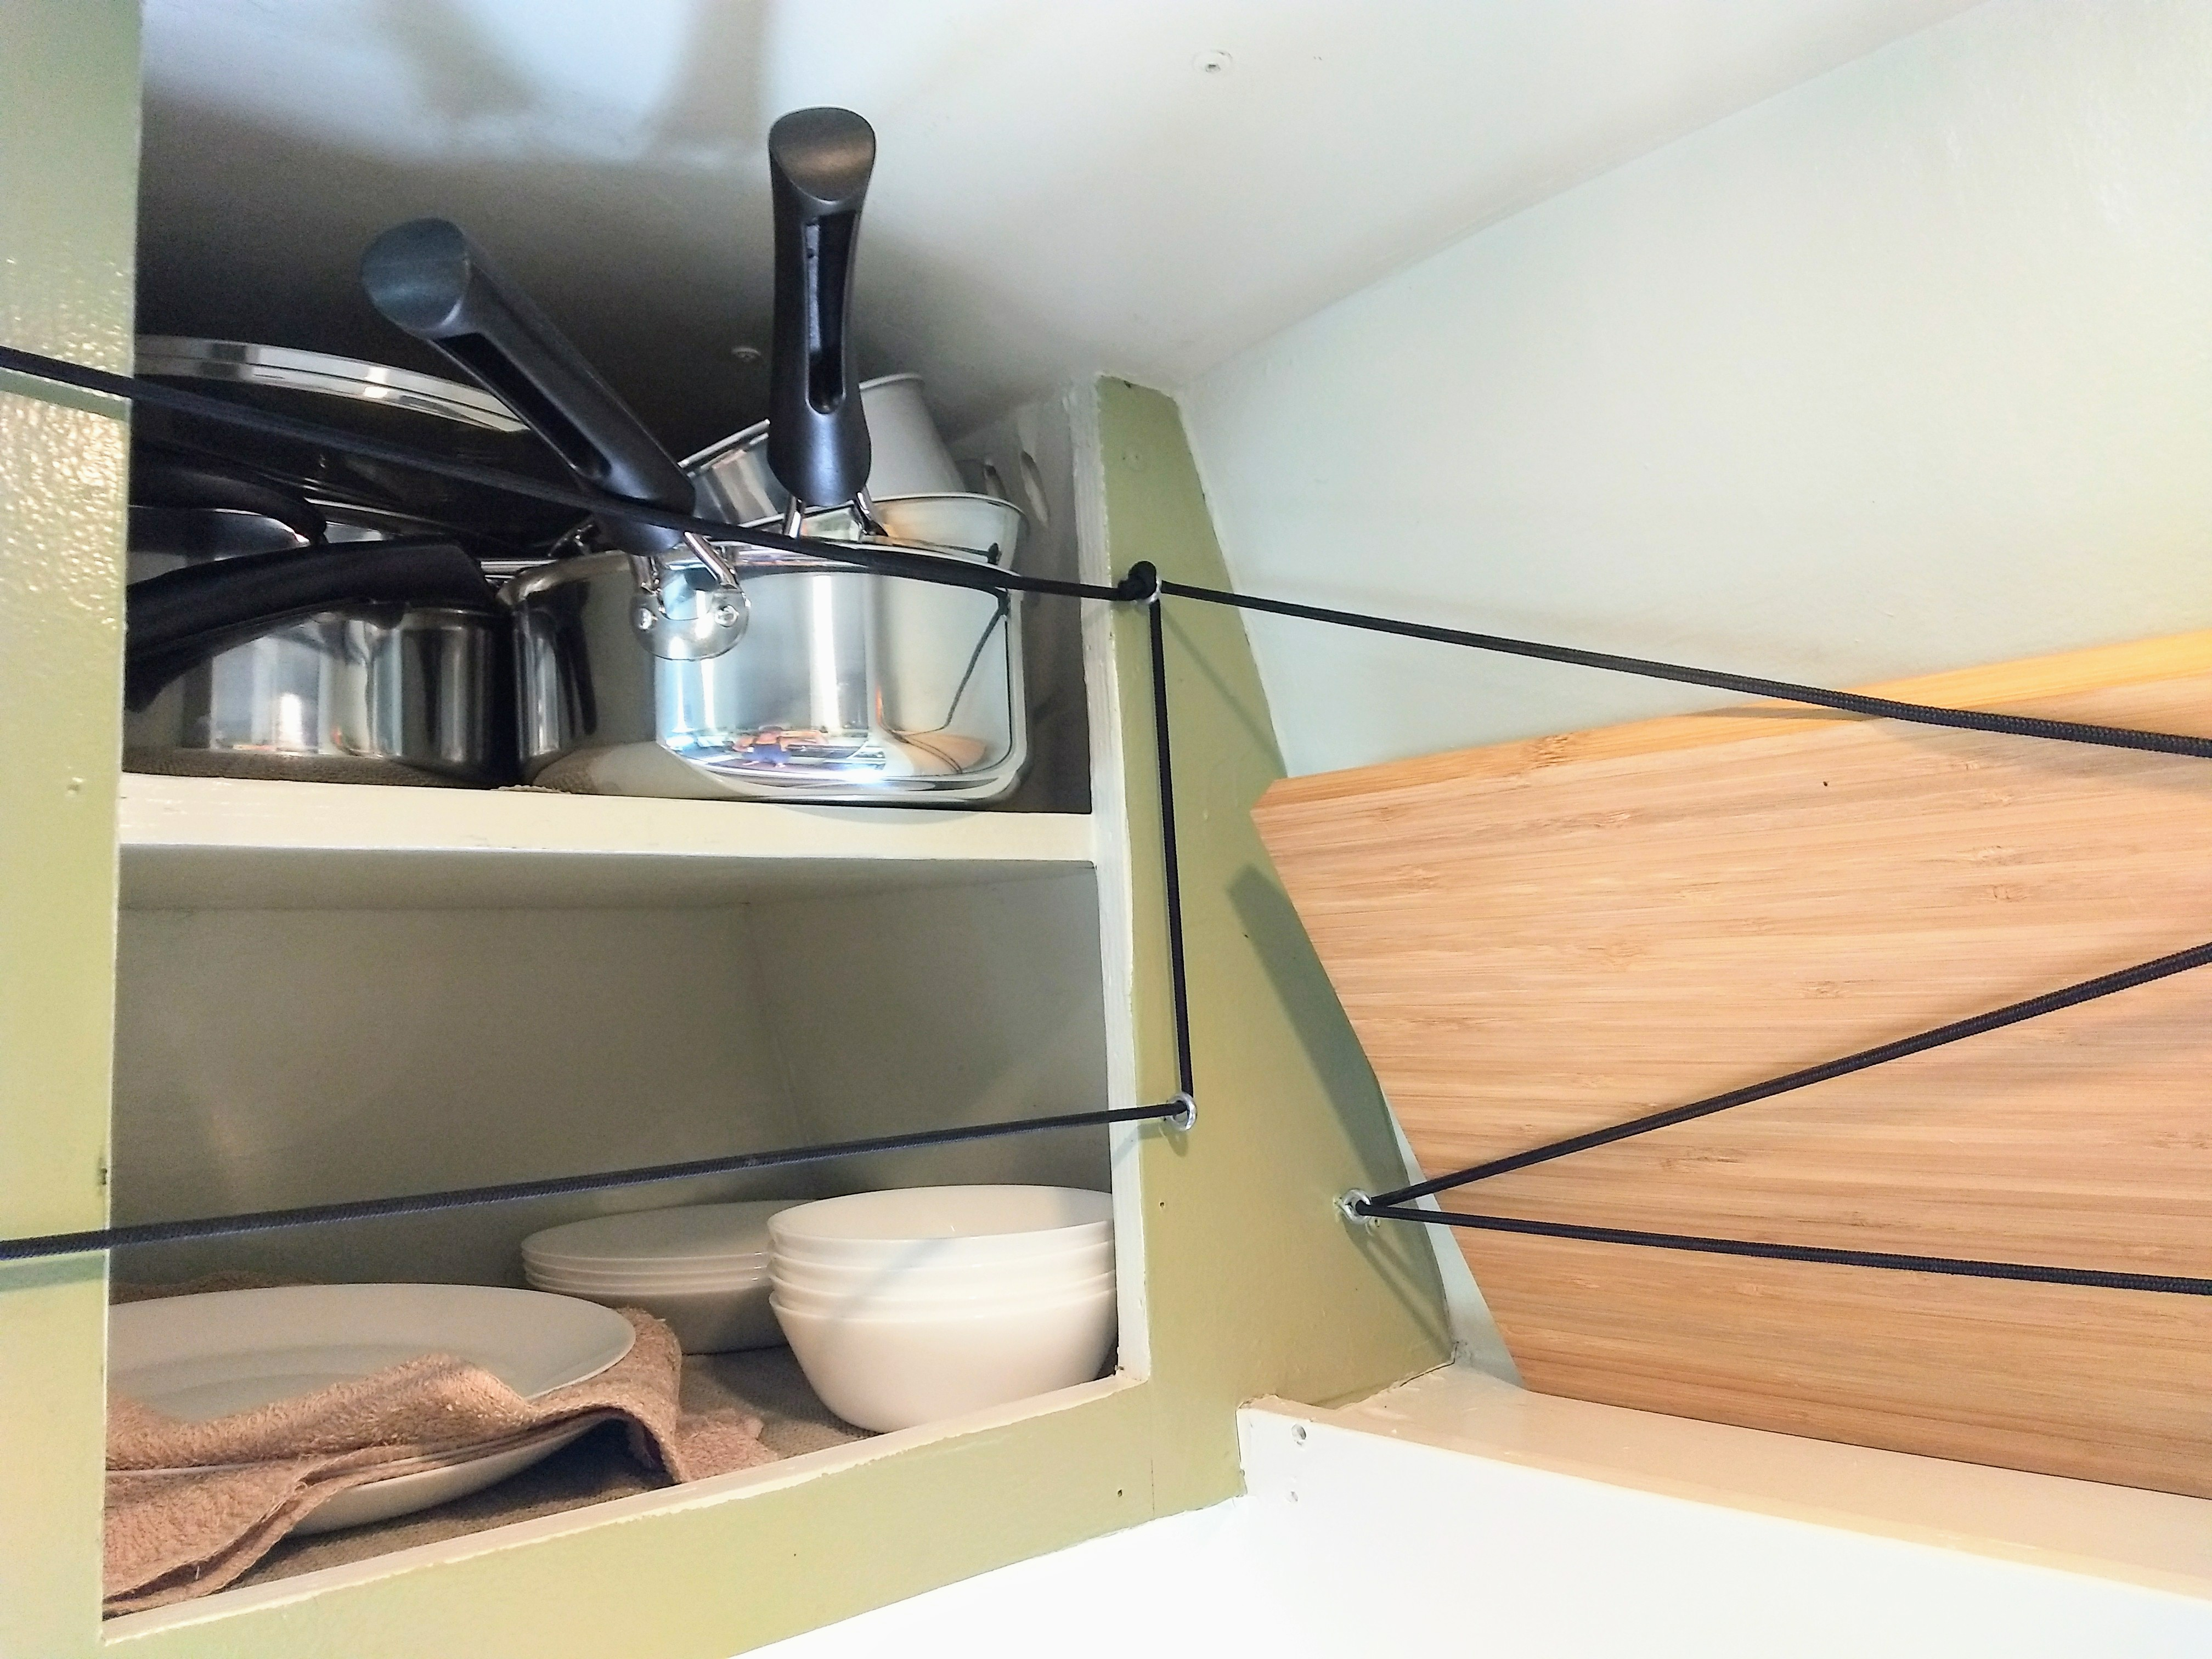 Cookware, dinnerware and a stove are provided for each trip.